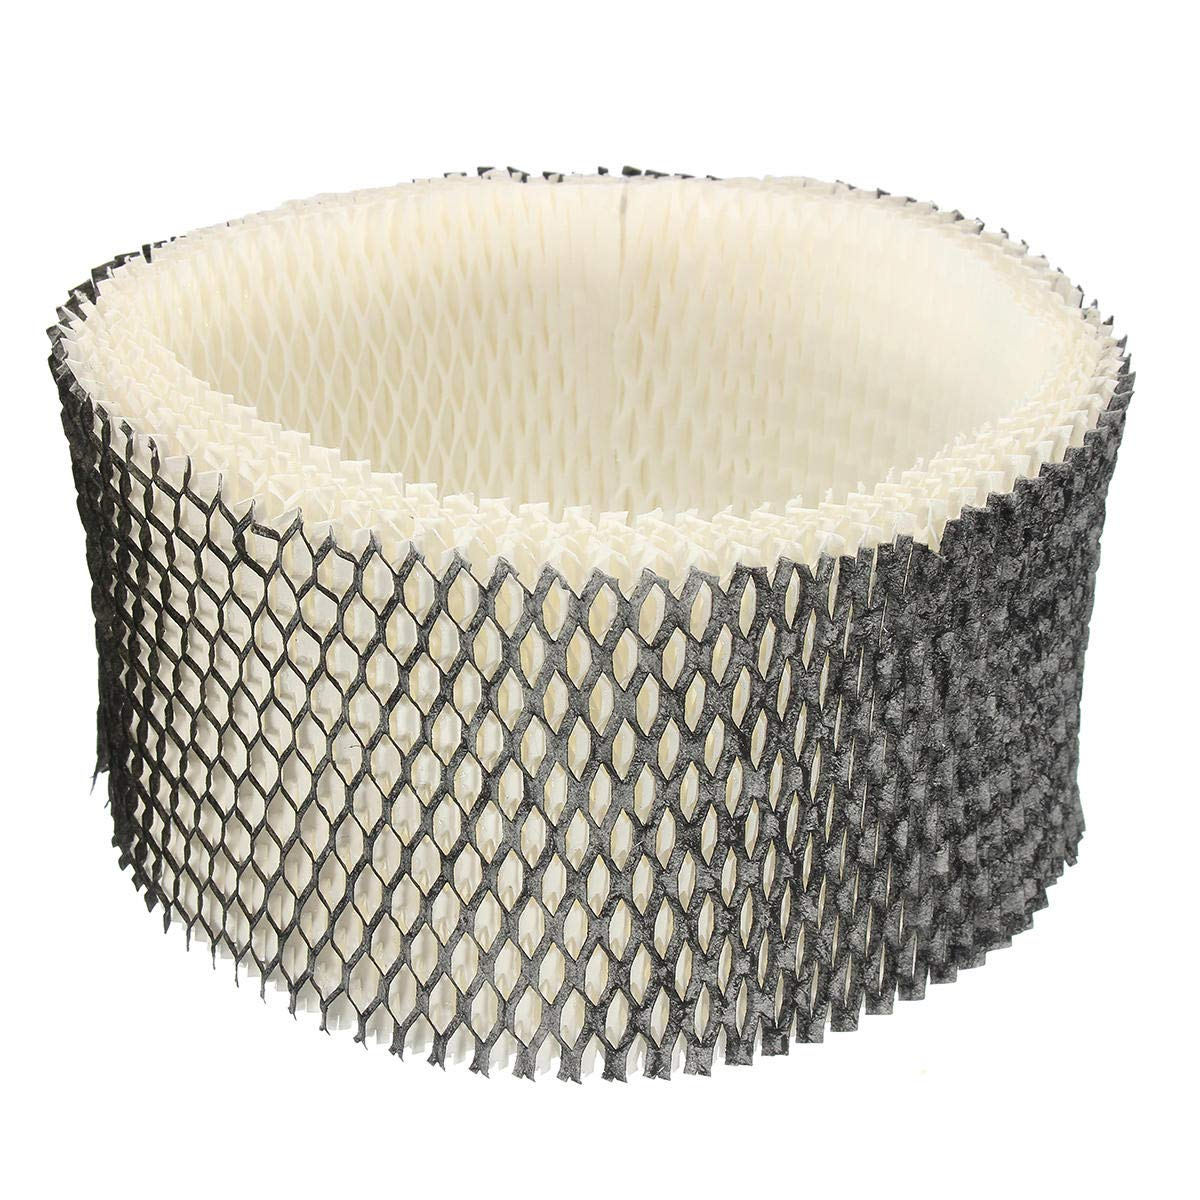 GIlH Humidifier Filter For Holmes HWF62